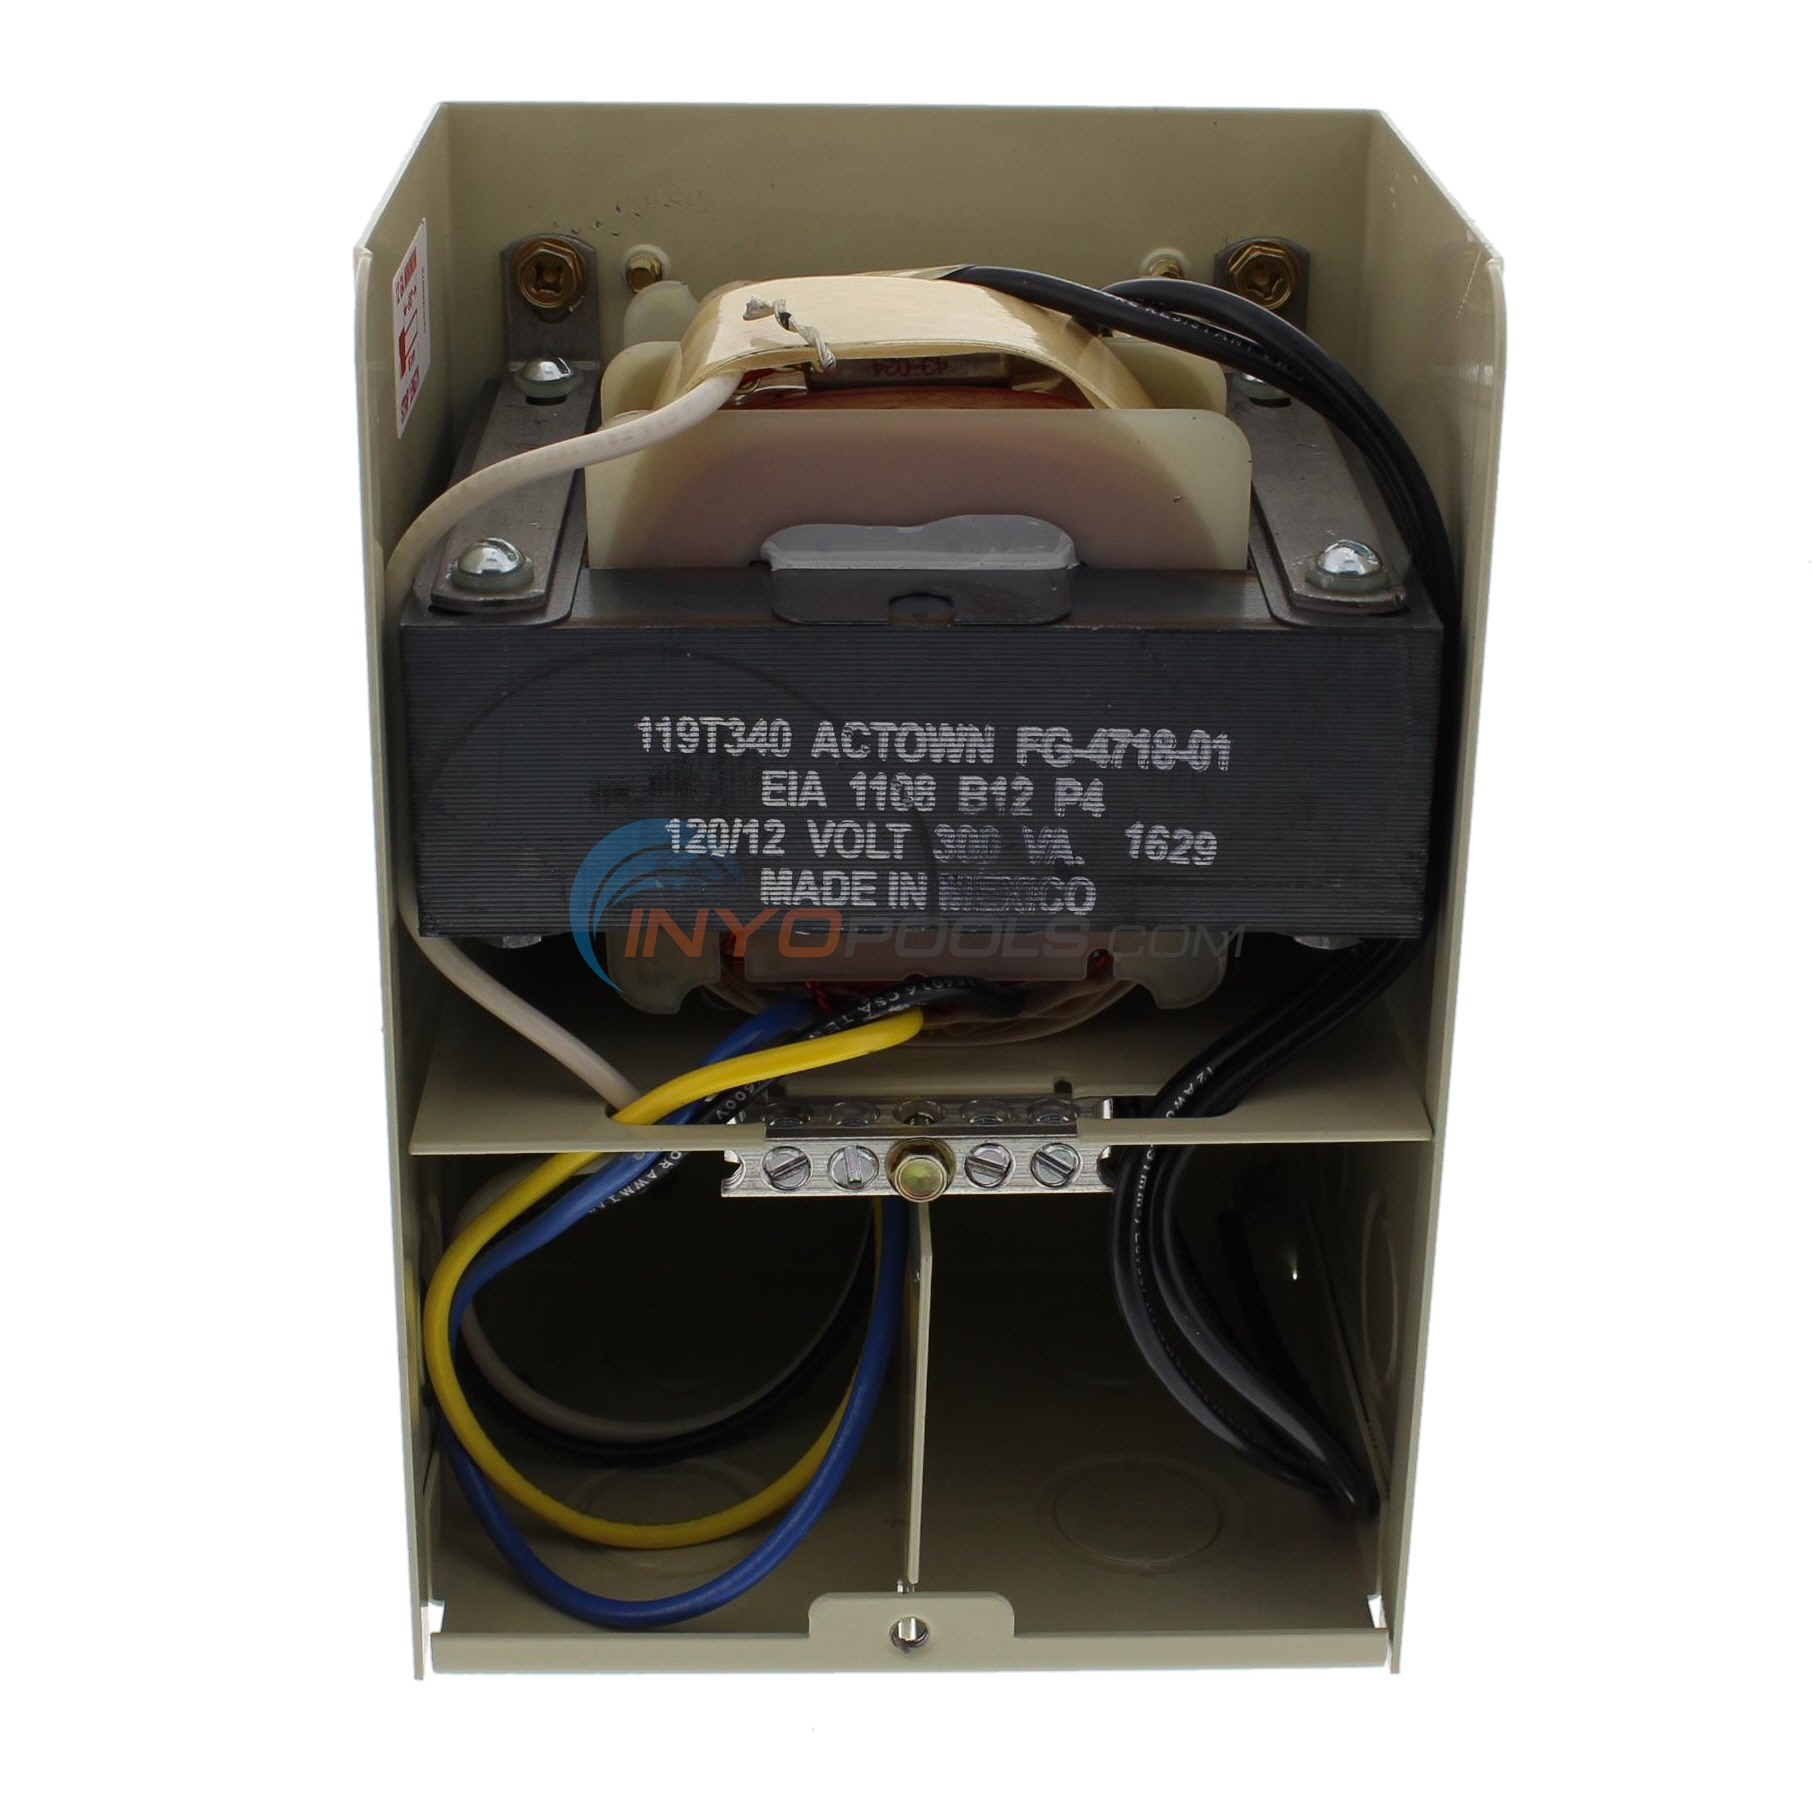 Intermatic 300 Watt Transformer - PX300